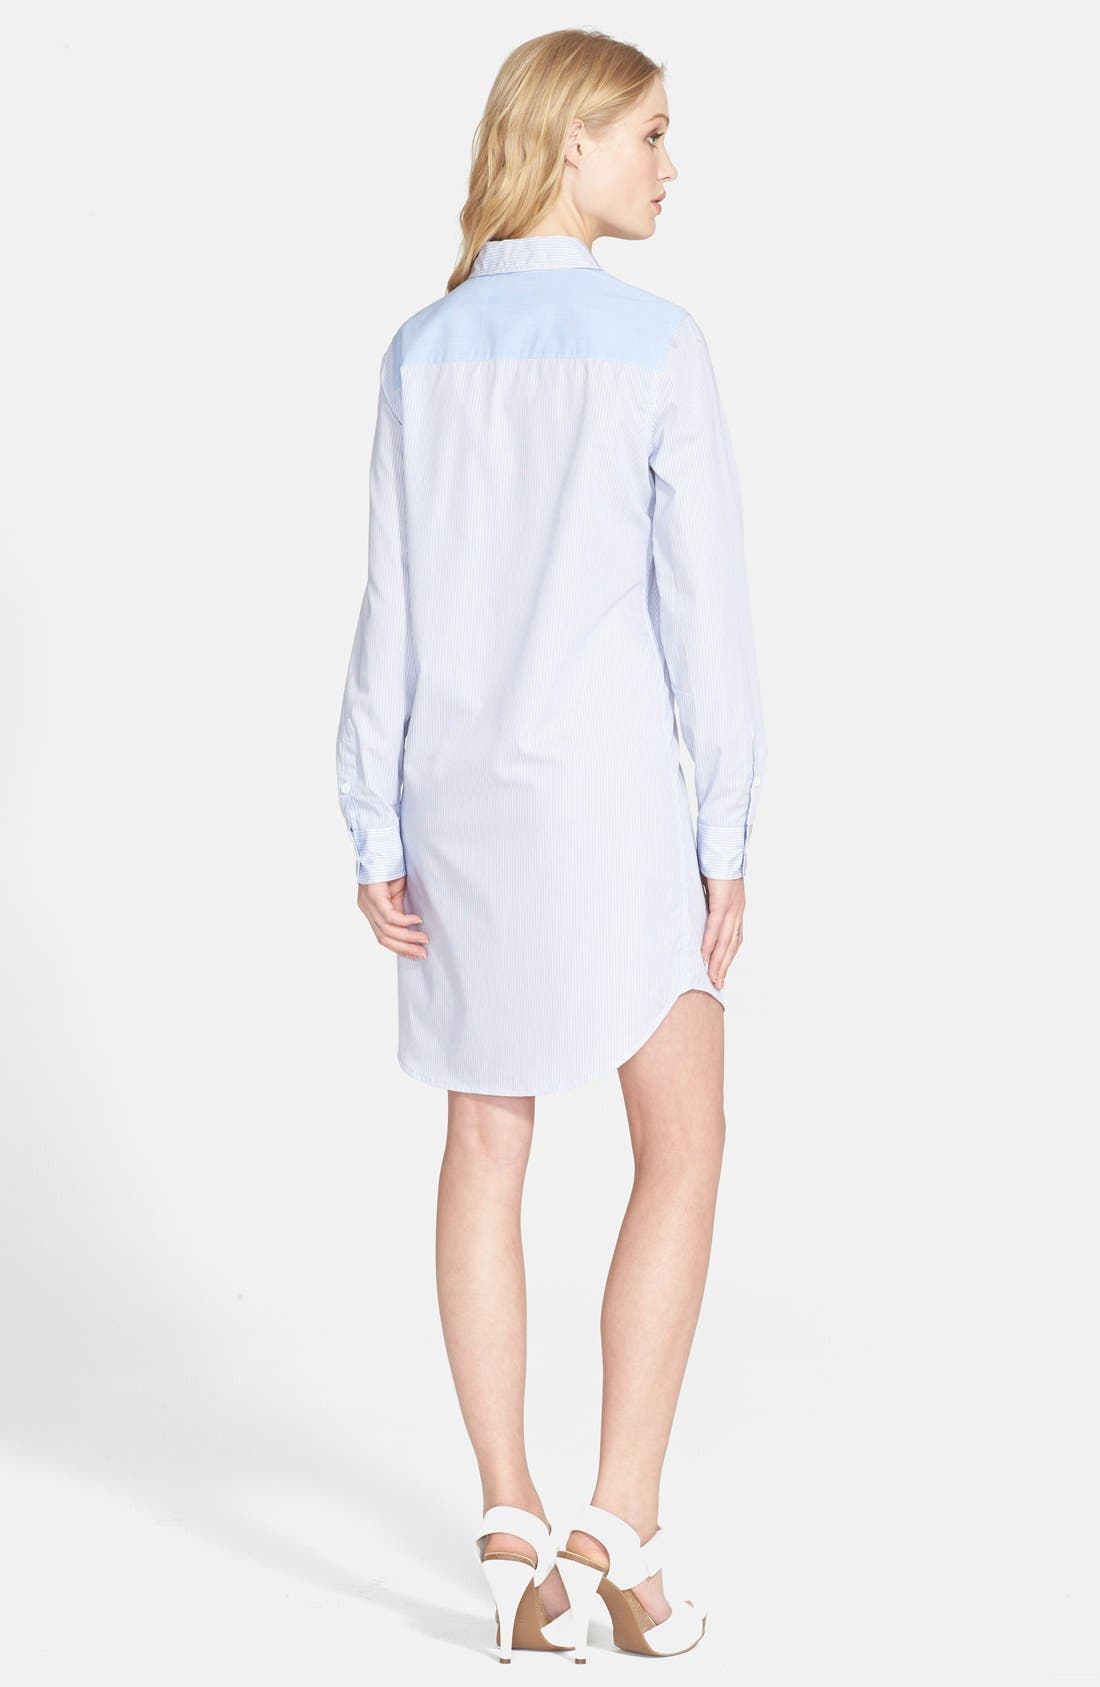 'Brett' Stripe Shirtdress,                             Alternate thumbnail 2, color,                             Periwinkle Blue/ Bright White